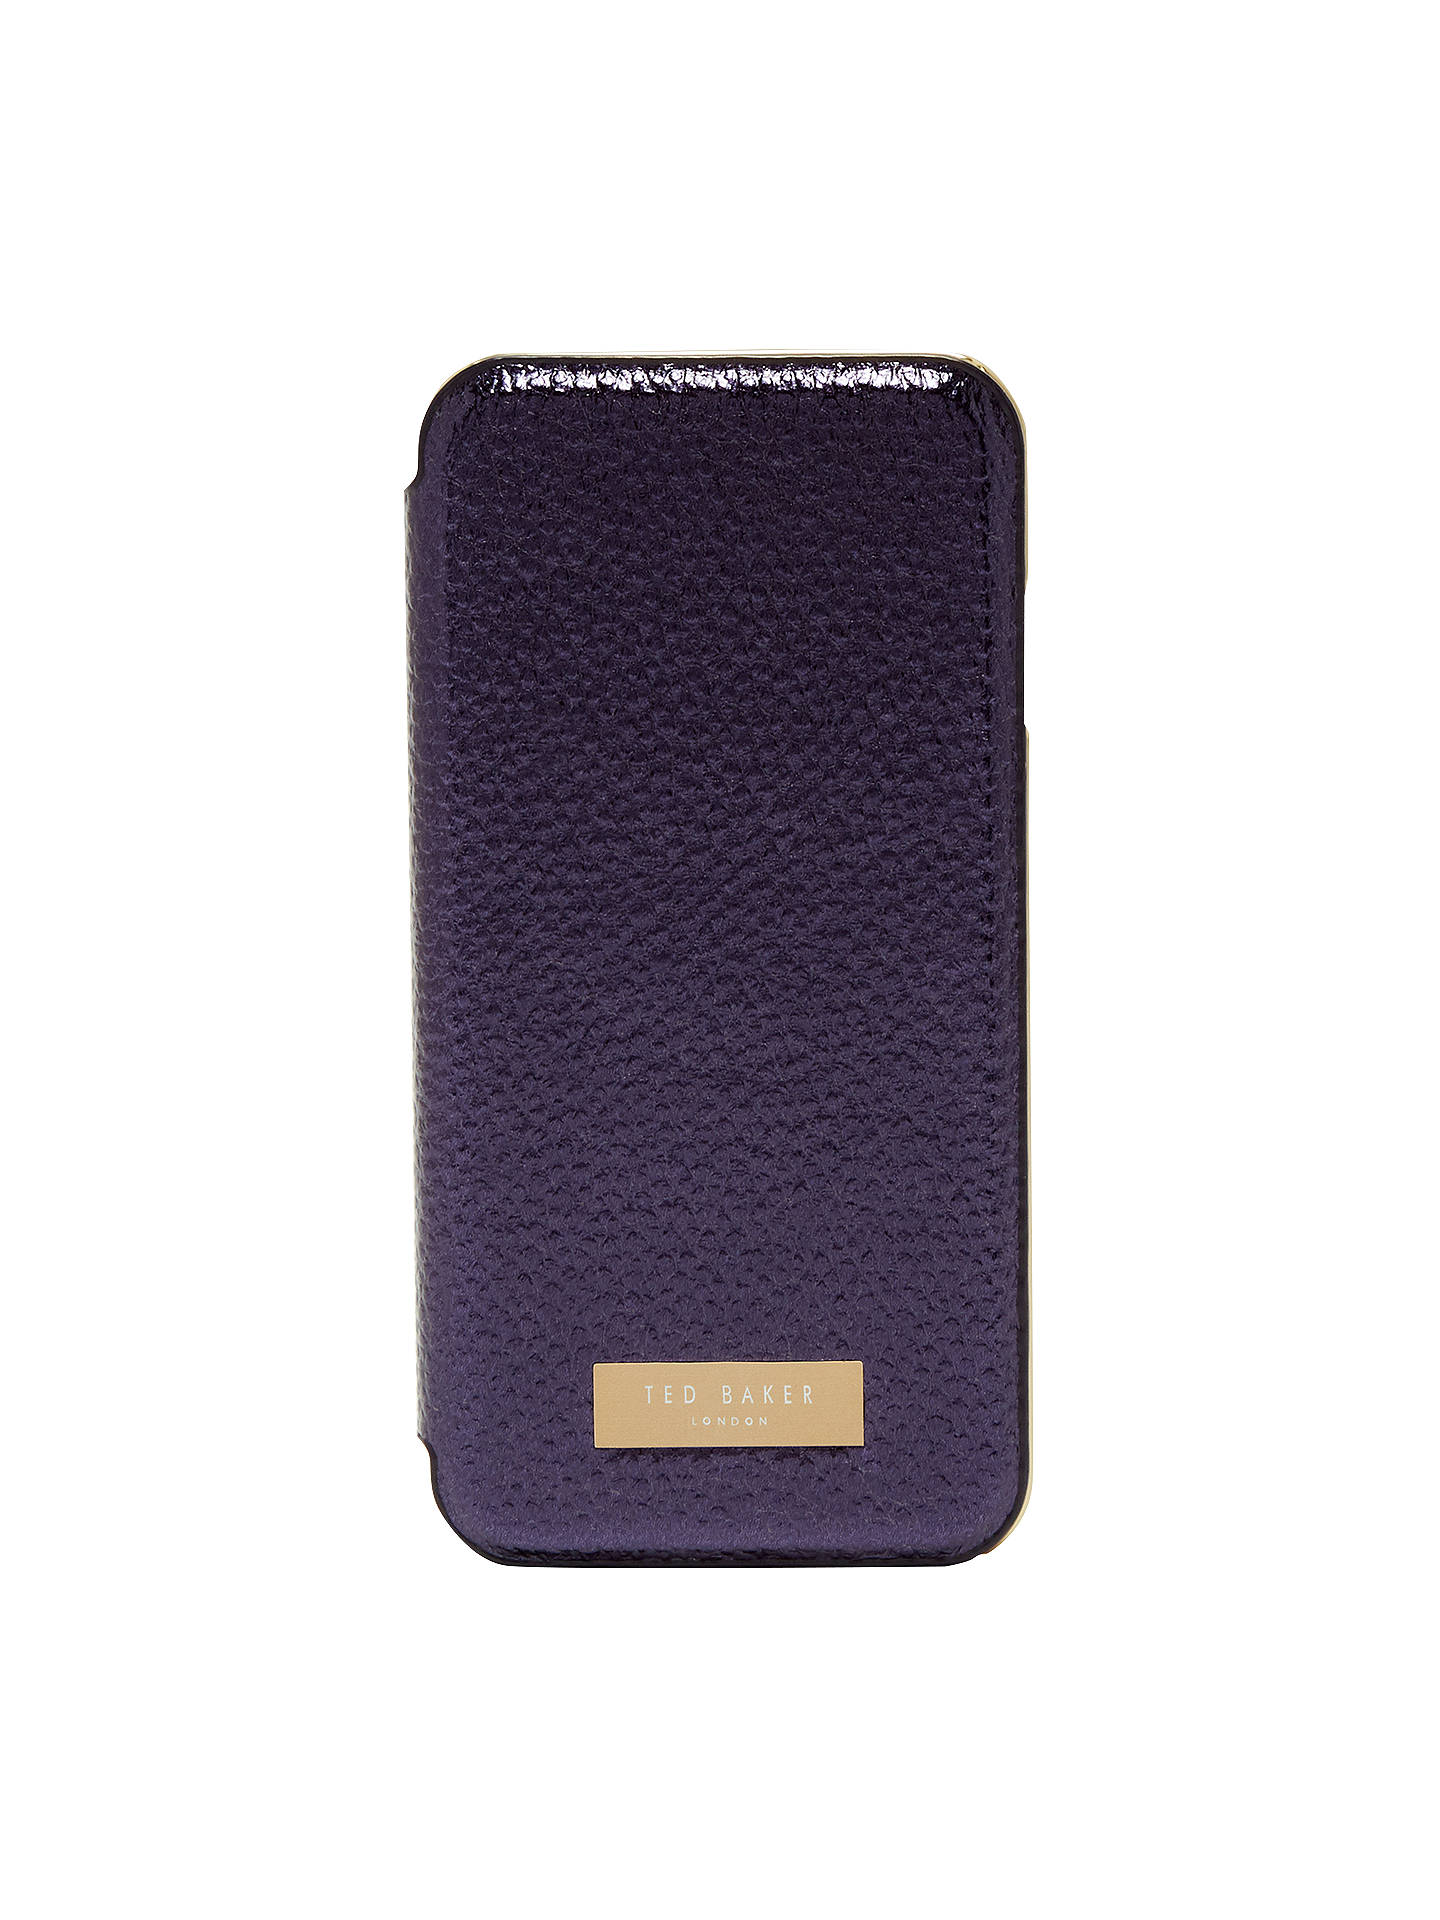 Ted Baker Cedar Textured Metallic iPhone 6/6s/7 Case, Dark Blue